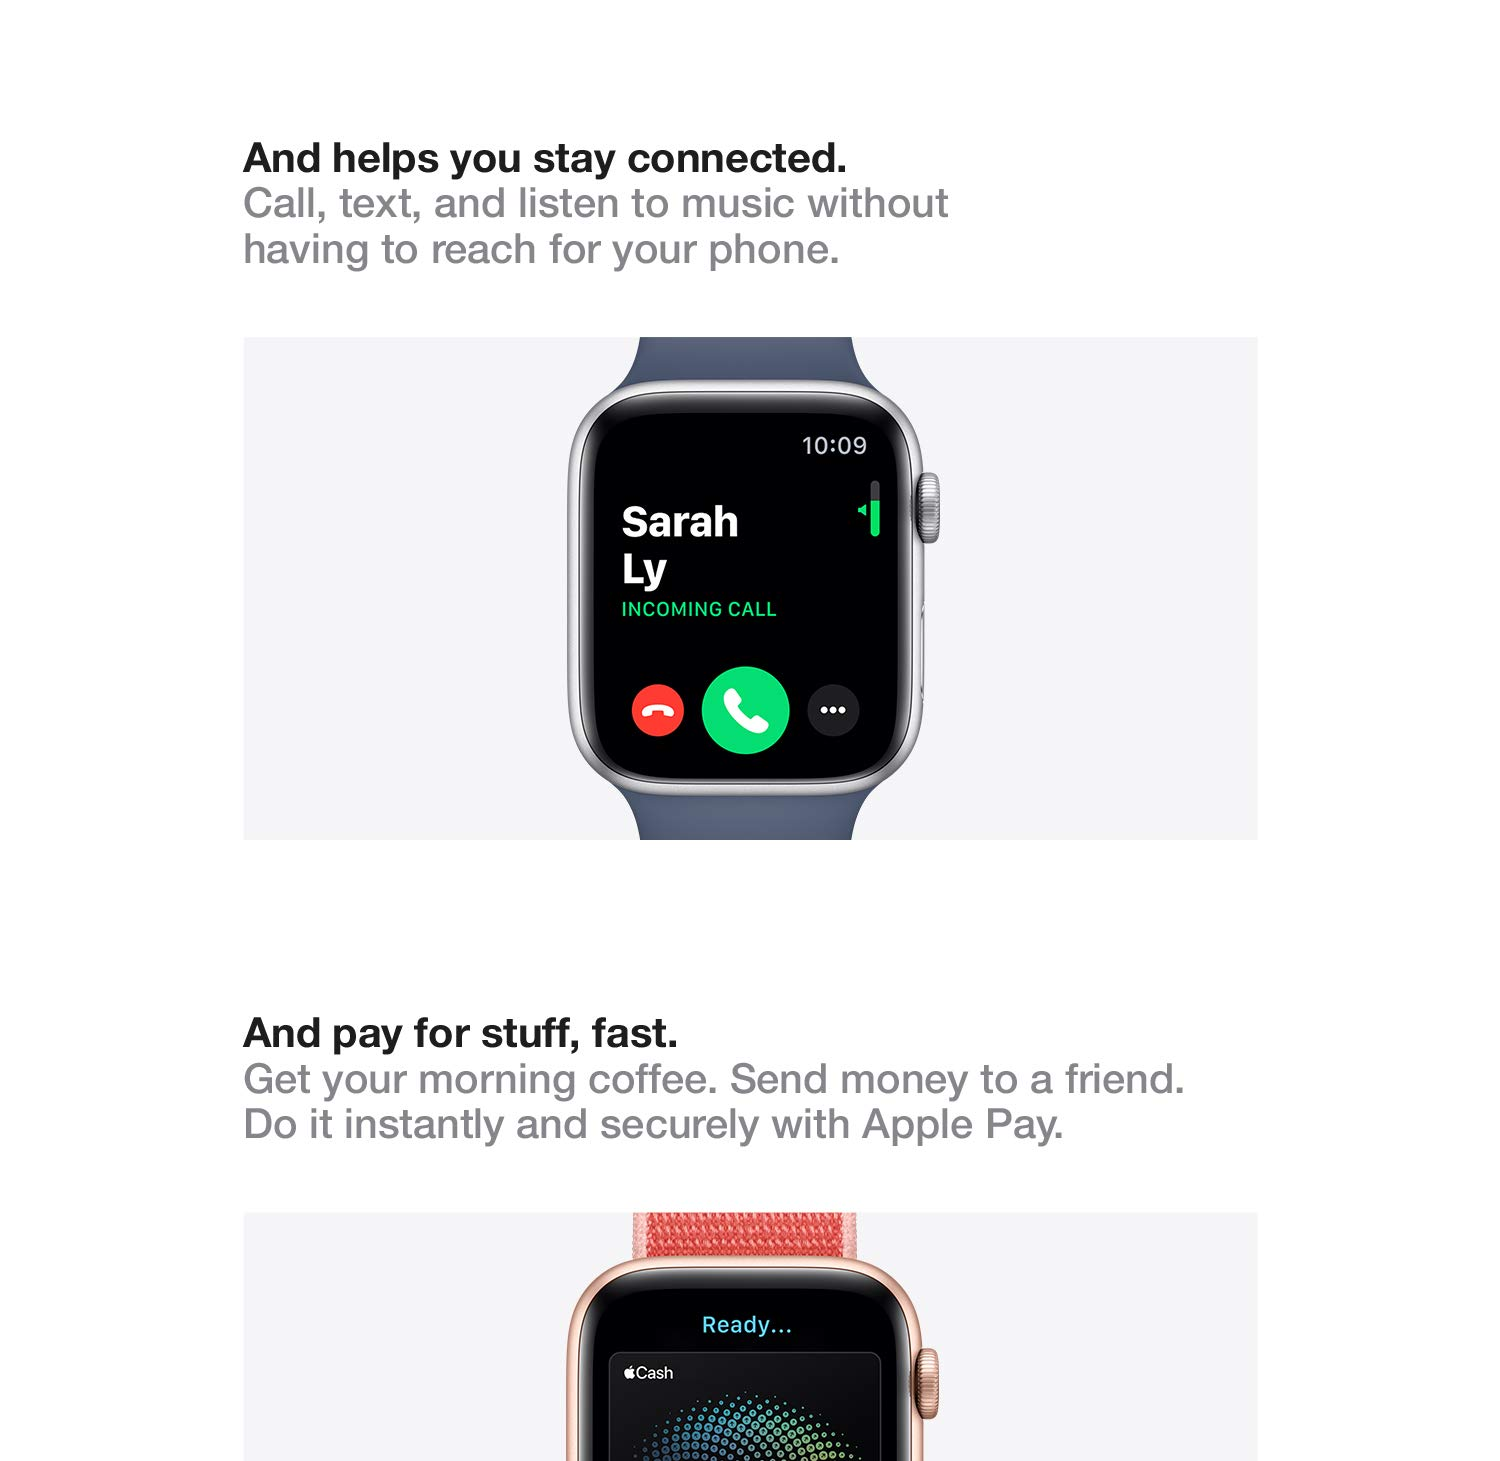 And pay for stuff, fast.  Get your morning coffee. Send money to a friend. Do it instantly and securely with Apple Pay.